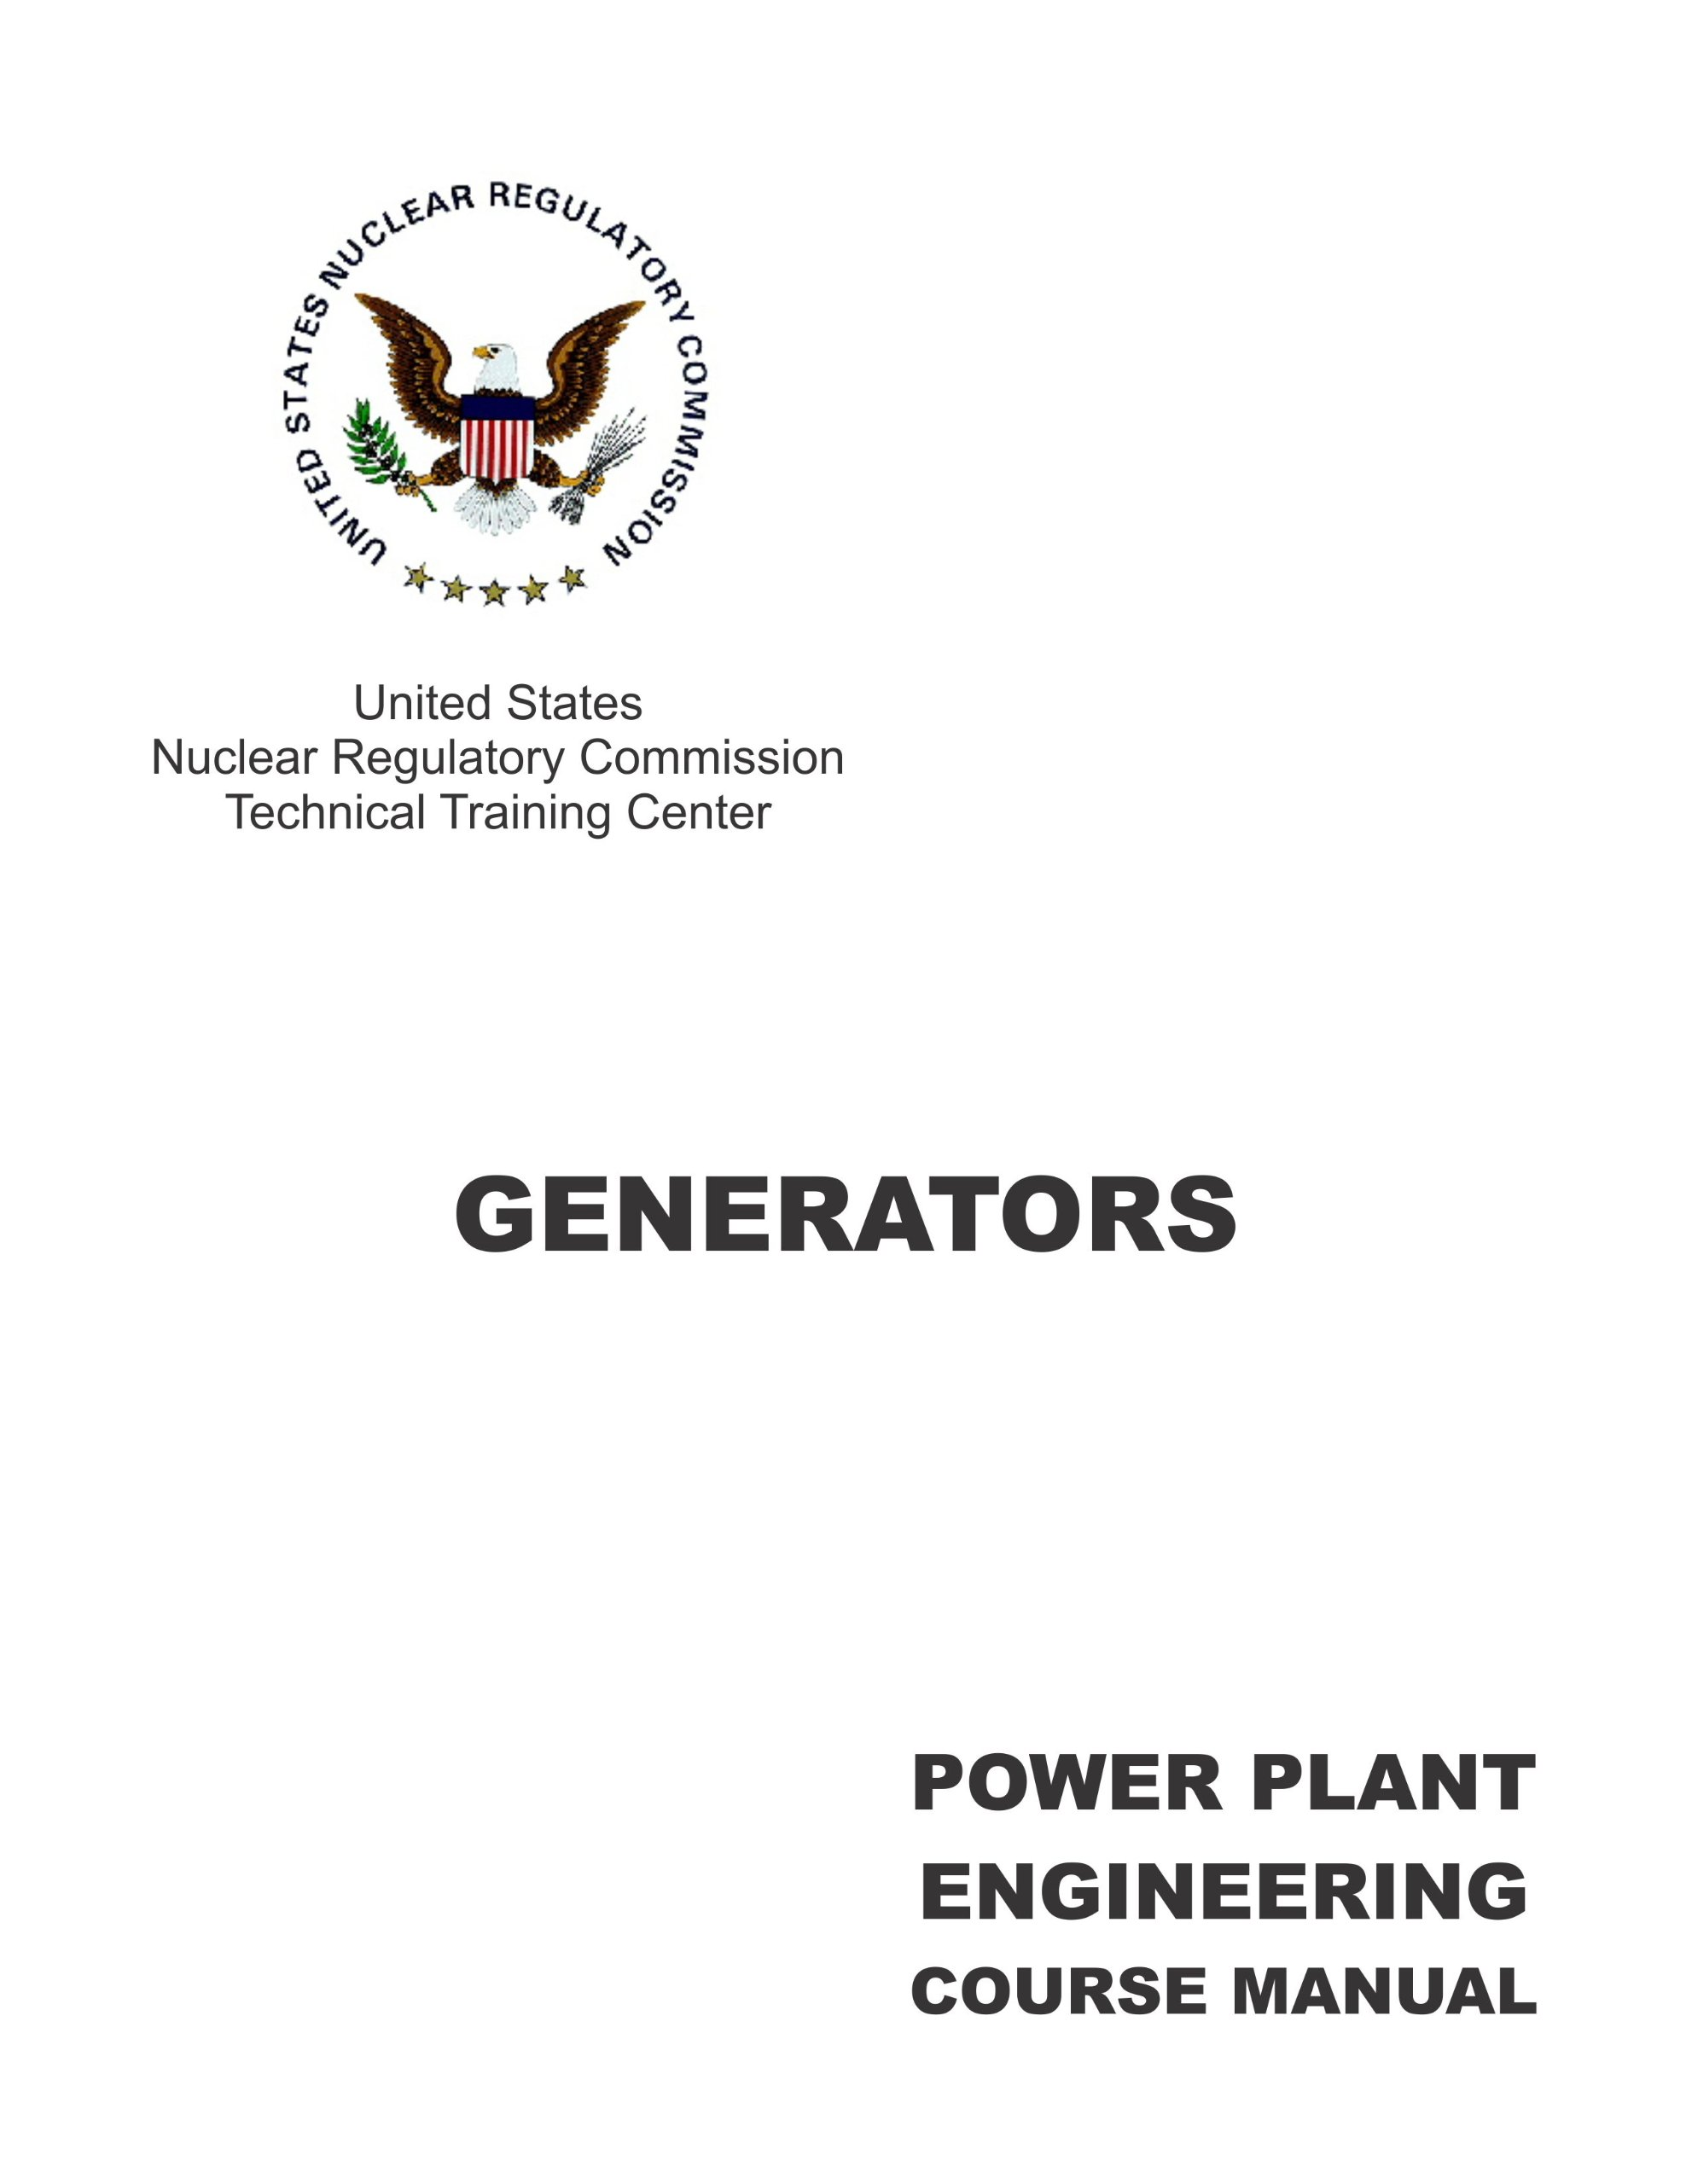 Power Plant Engineering Course Manual Sections 4 5 6 And 7 4